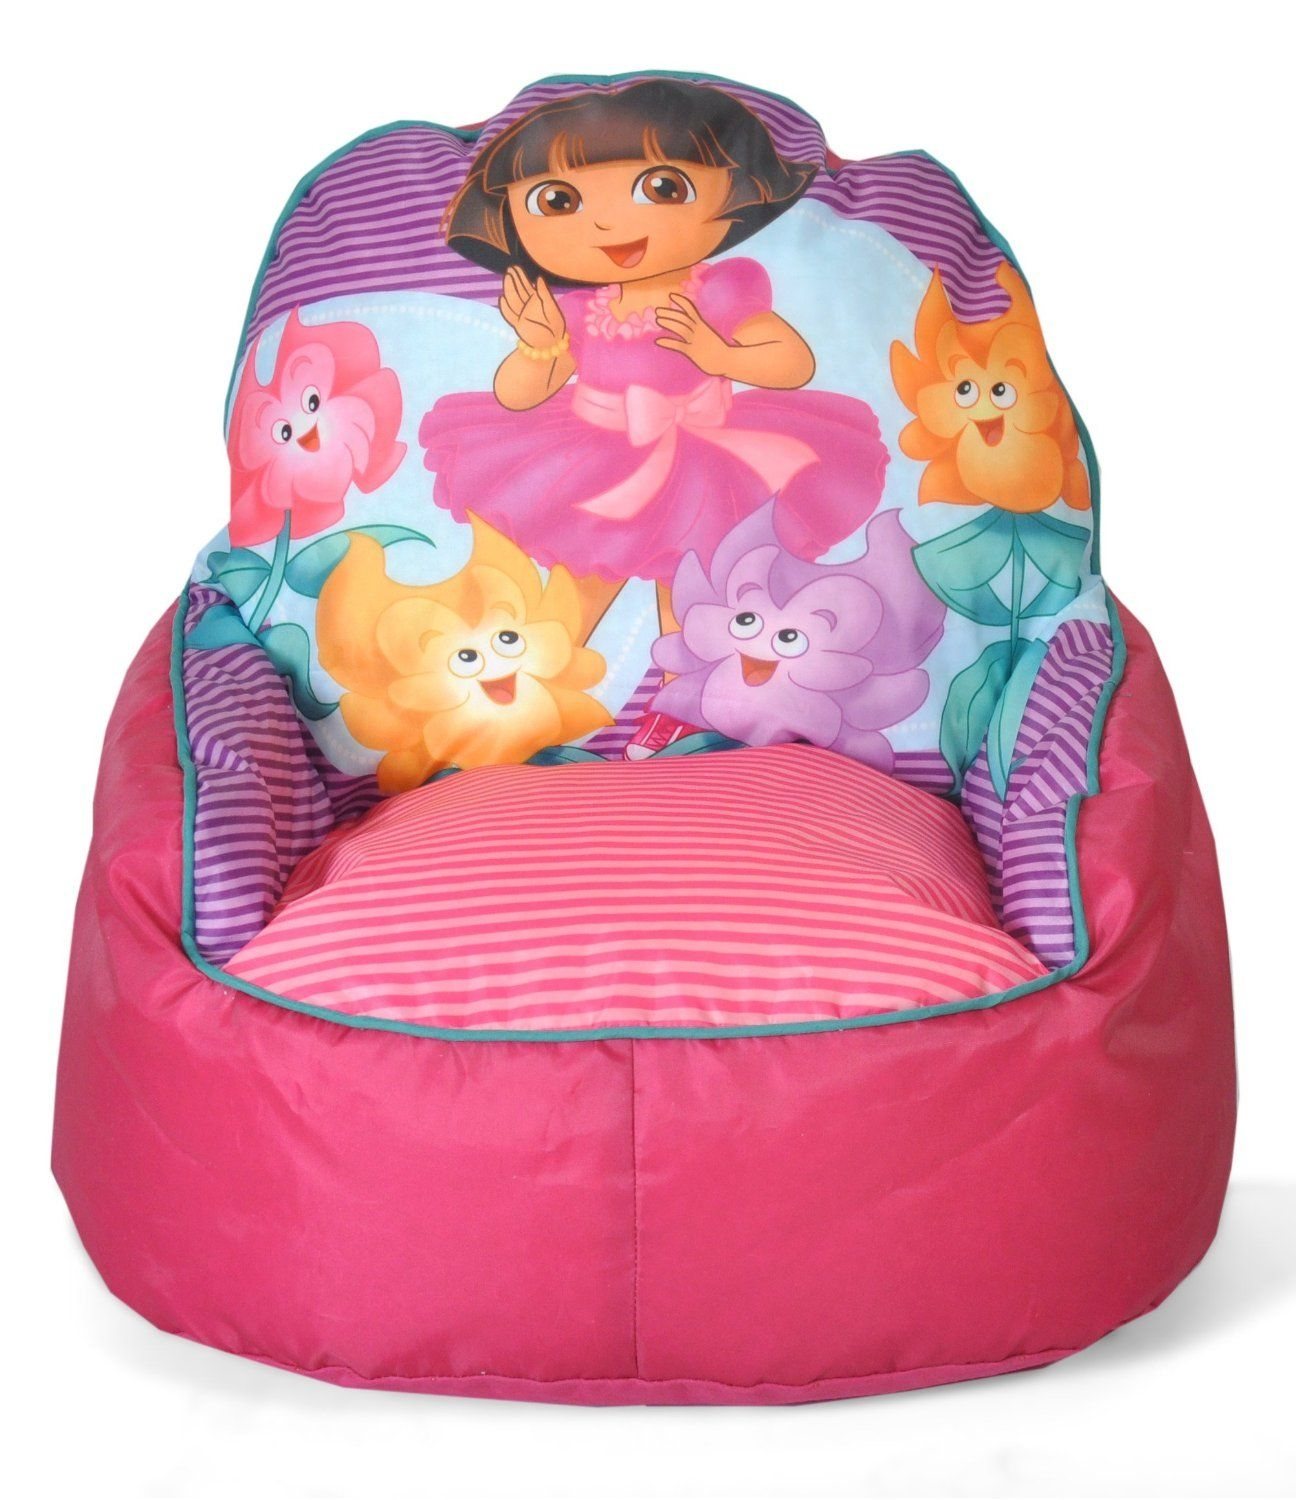 Nickelodeon Dora The Explorer Toddler Bean Bag Sofa Chair  sc 1 st  Foter & Toddlers Chairs - Foter